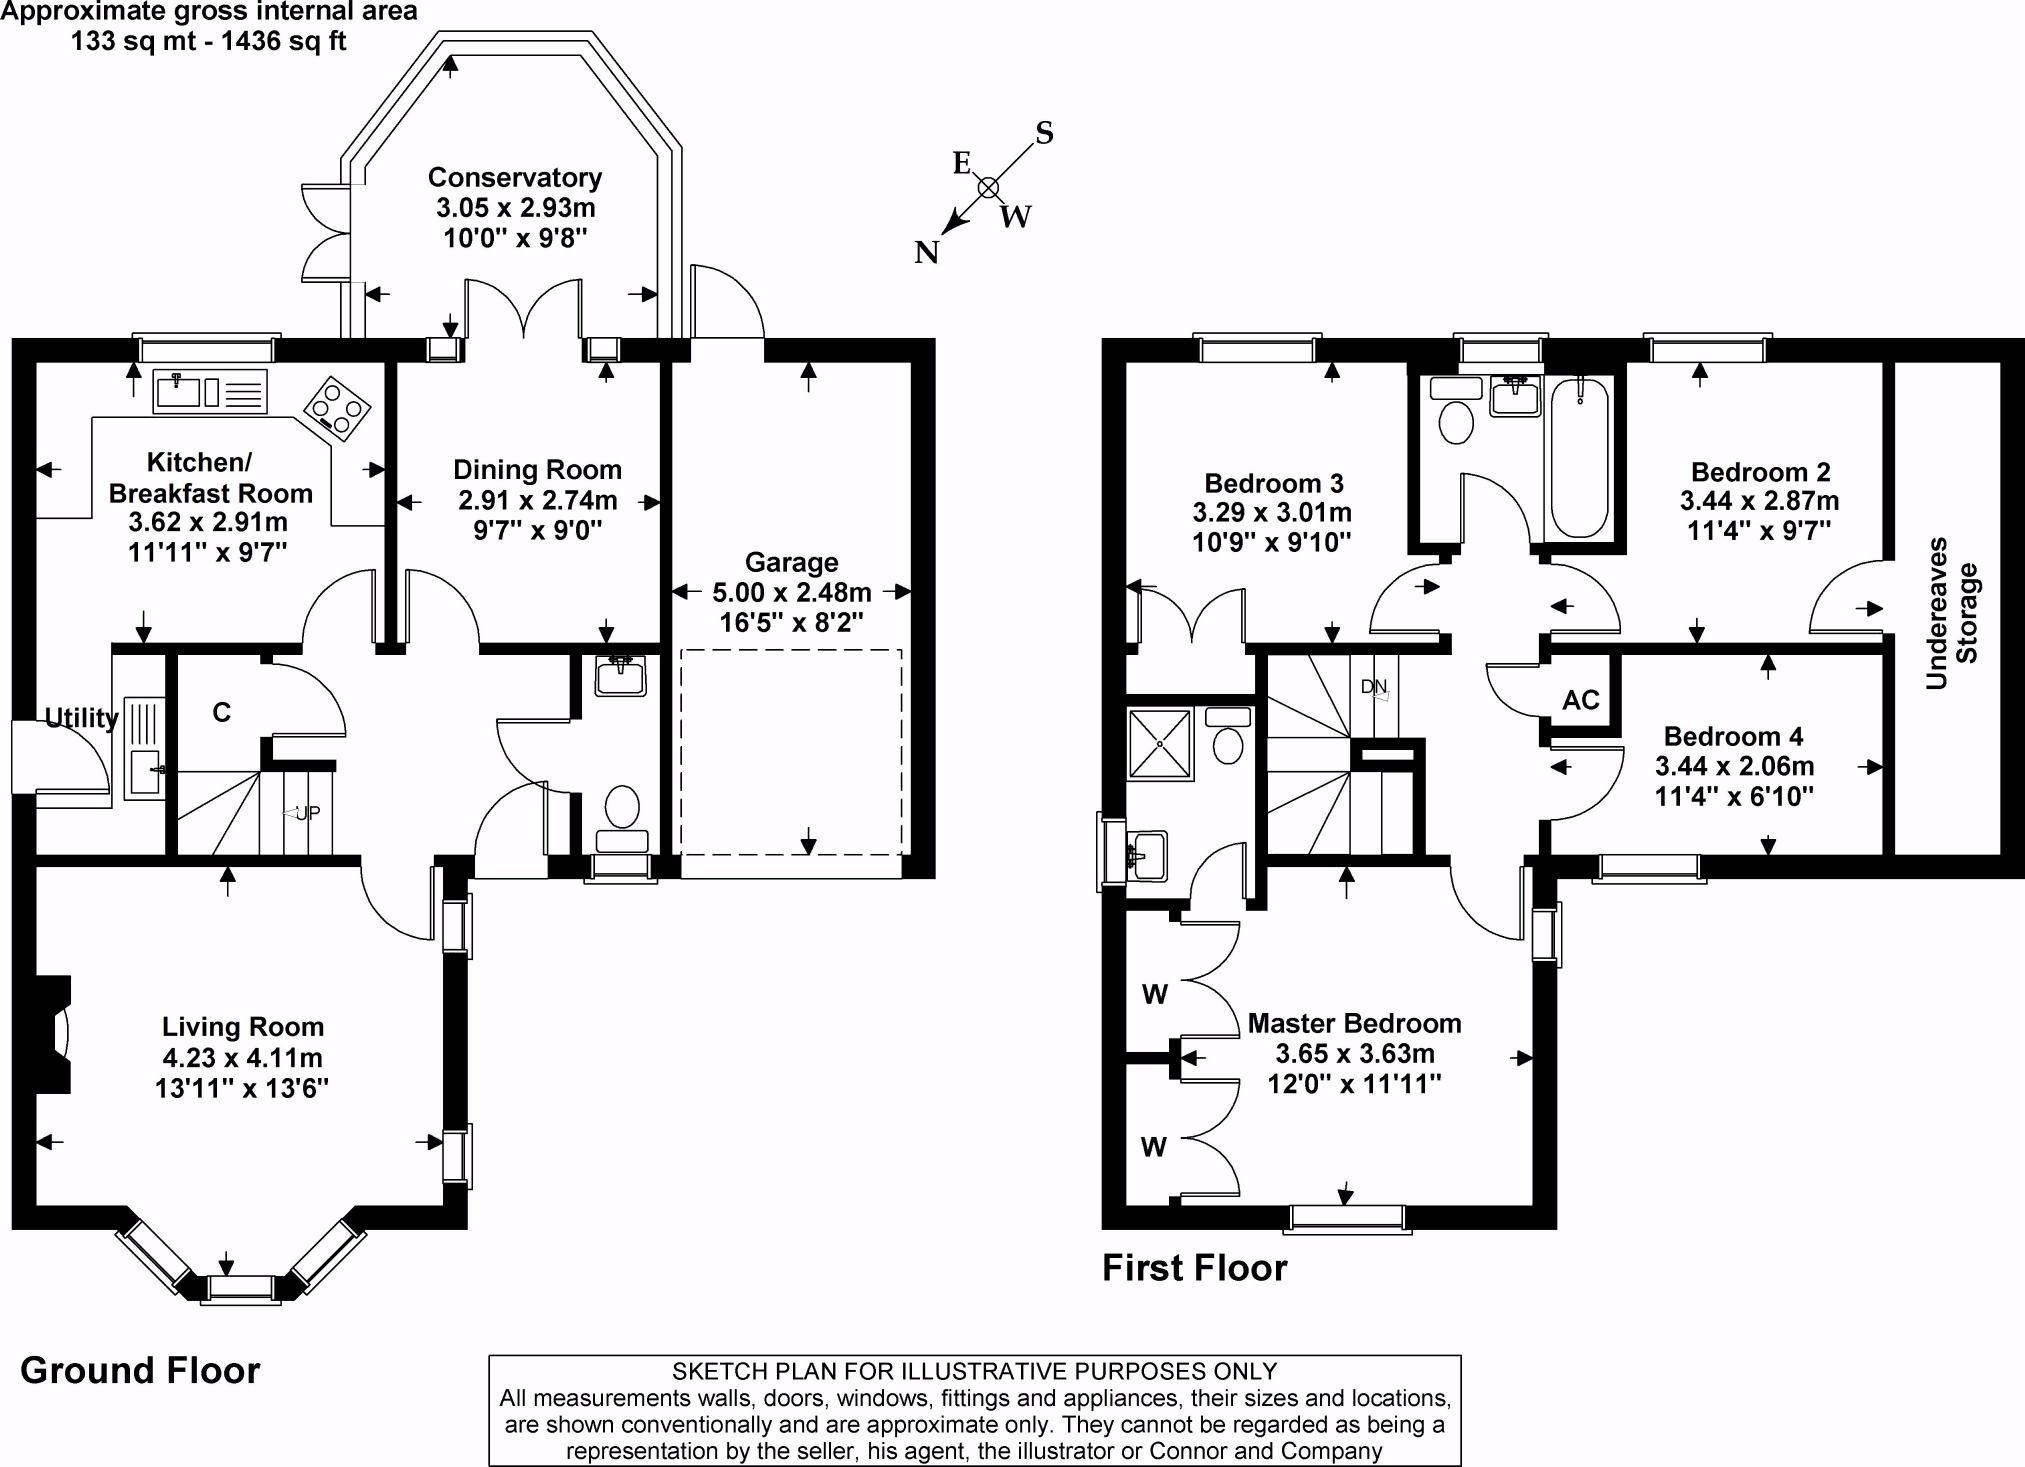 CJ Hole Cheltenham 4 bedroom Detached House for sale in Up Hatherley – Bryant Homes Floor Plans